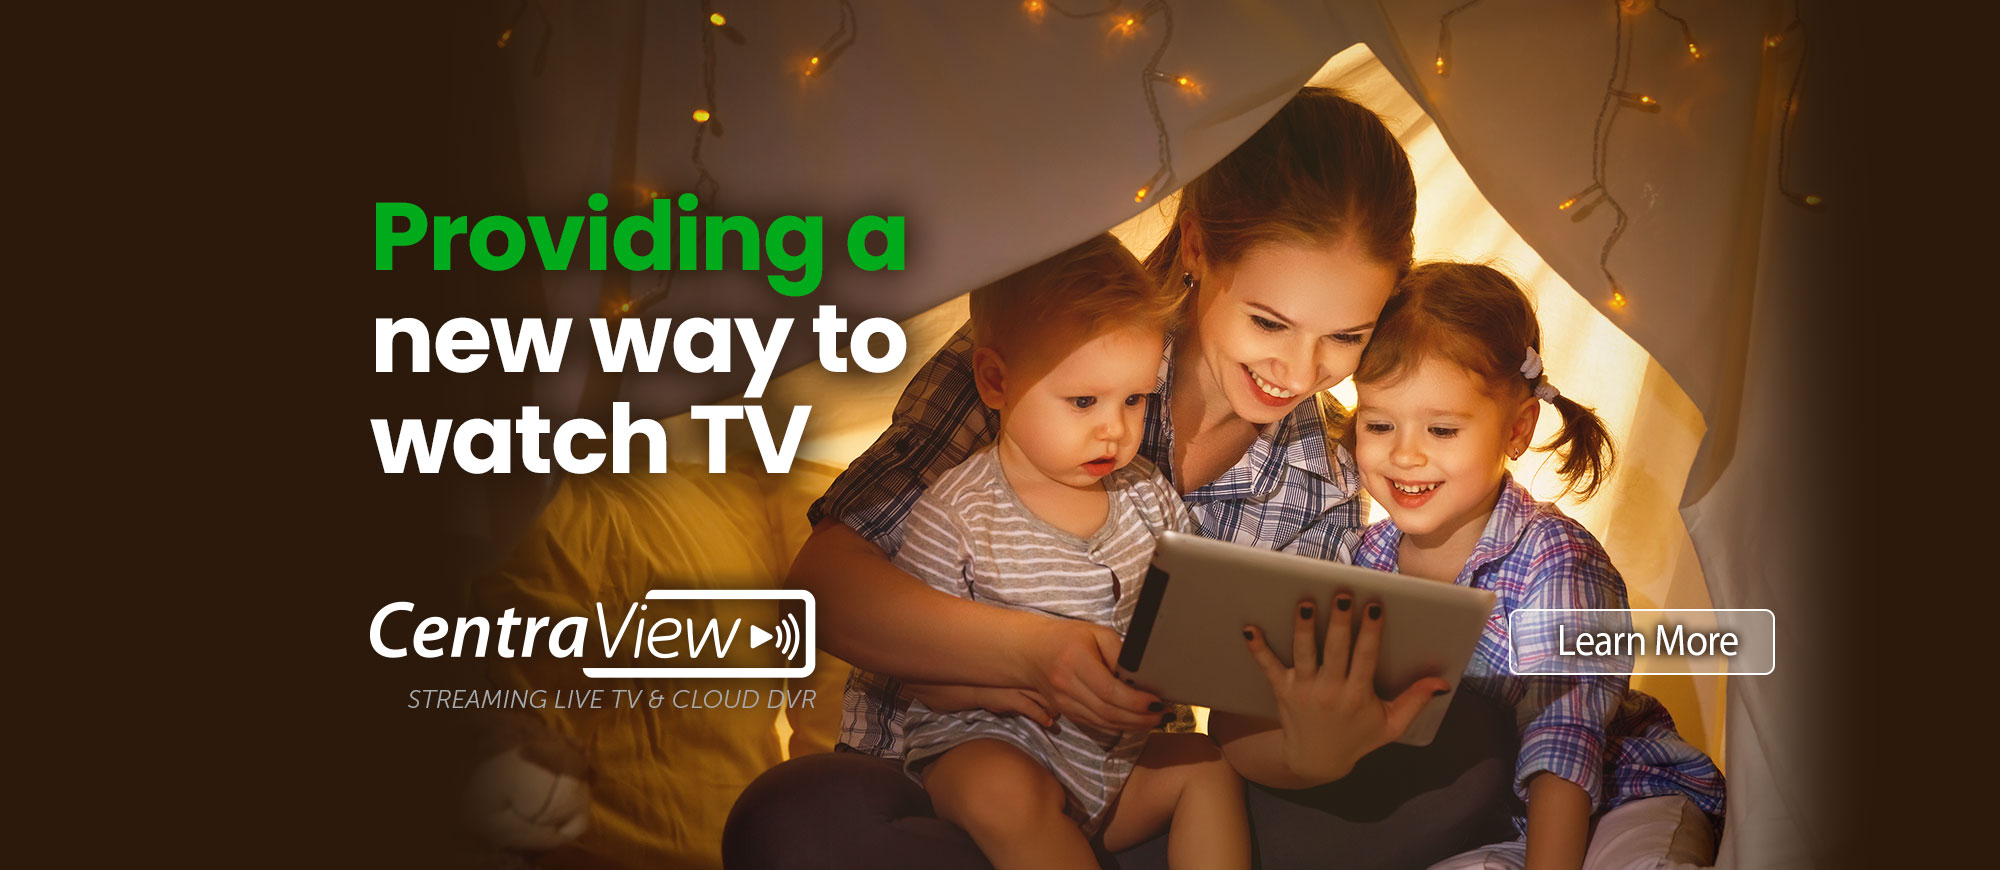 CentraView - A new way to watch TV